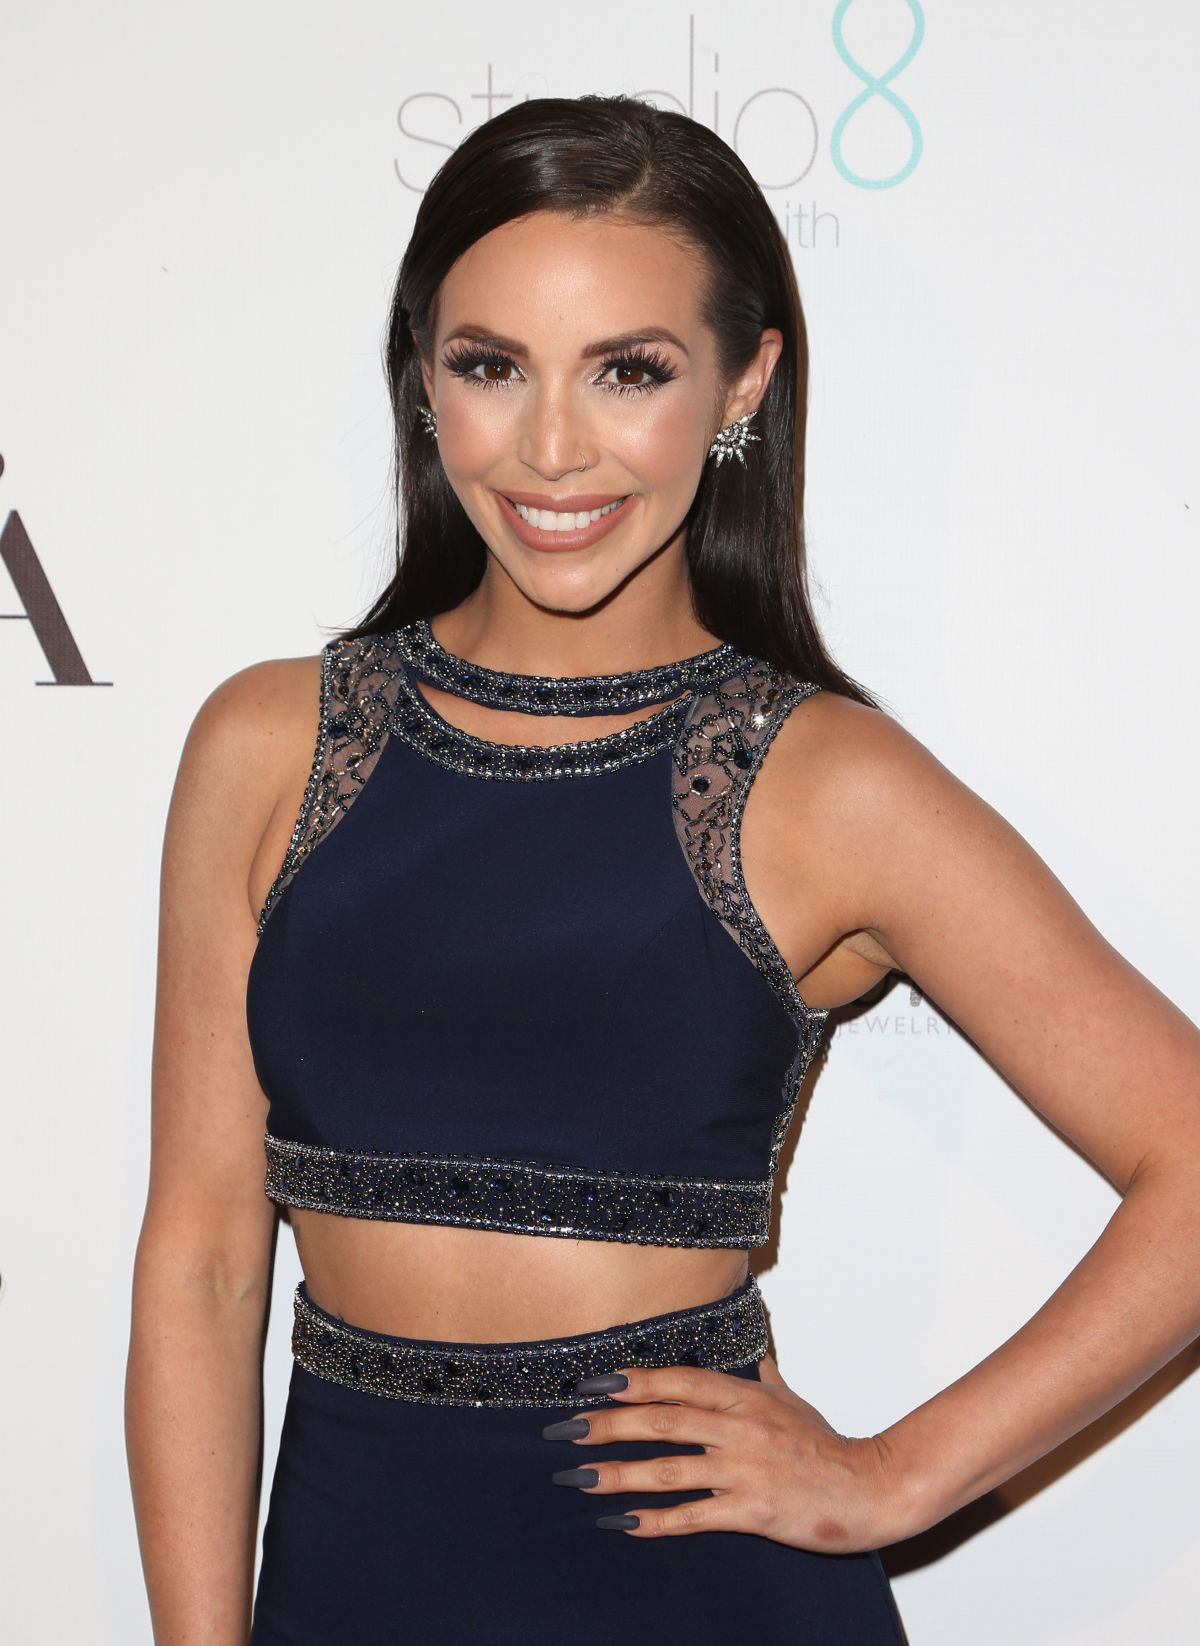 SCHEANA MARIE at This is LA Premiere Party in Los Angeles 05/03/2017